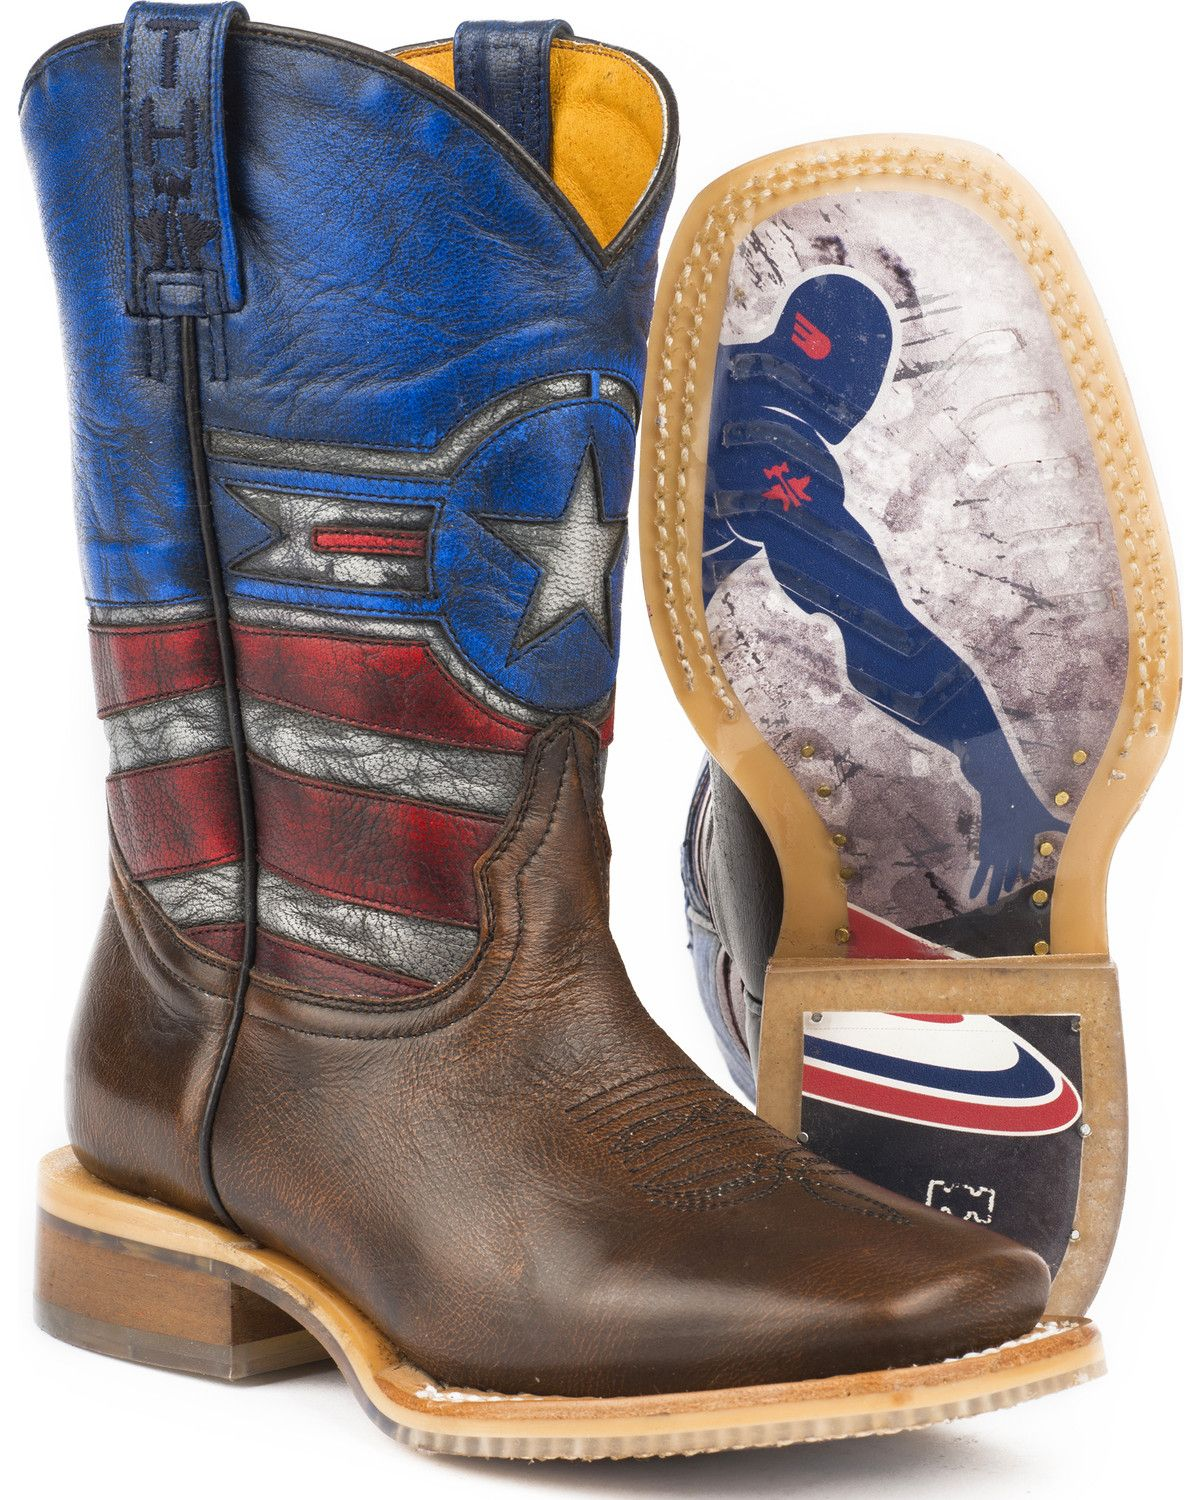 3e8d5f37375 Tin Haul Boys' Justice Cowboy Boots - Square Toe in 2019 | boots ...